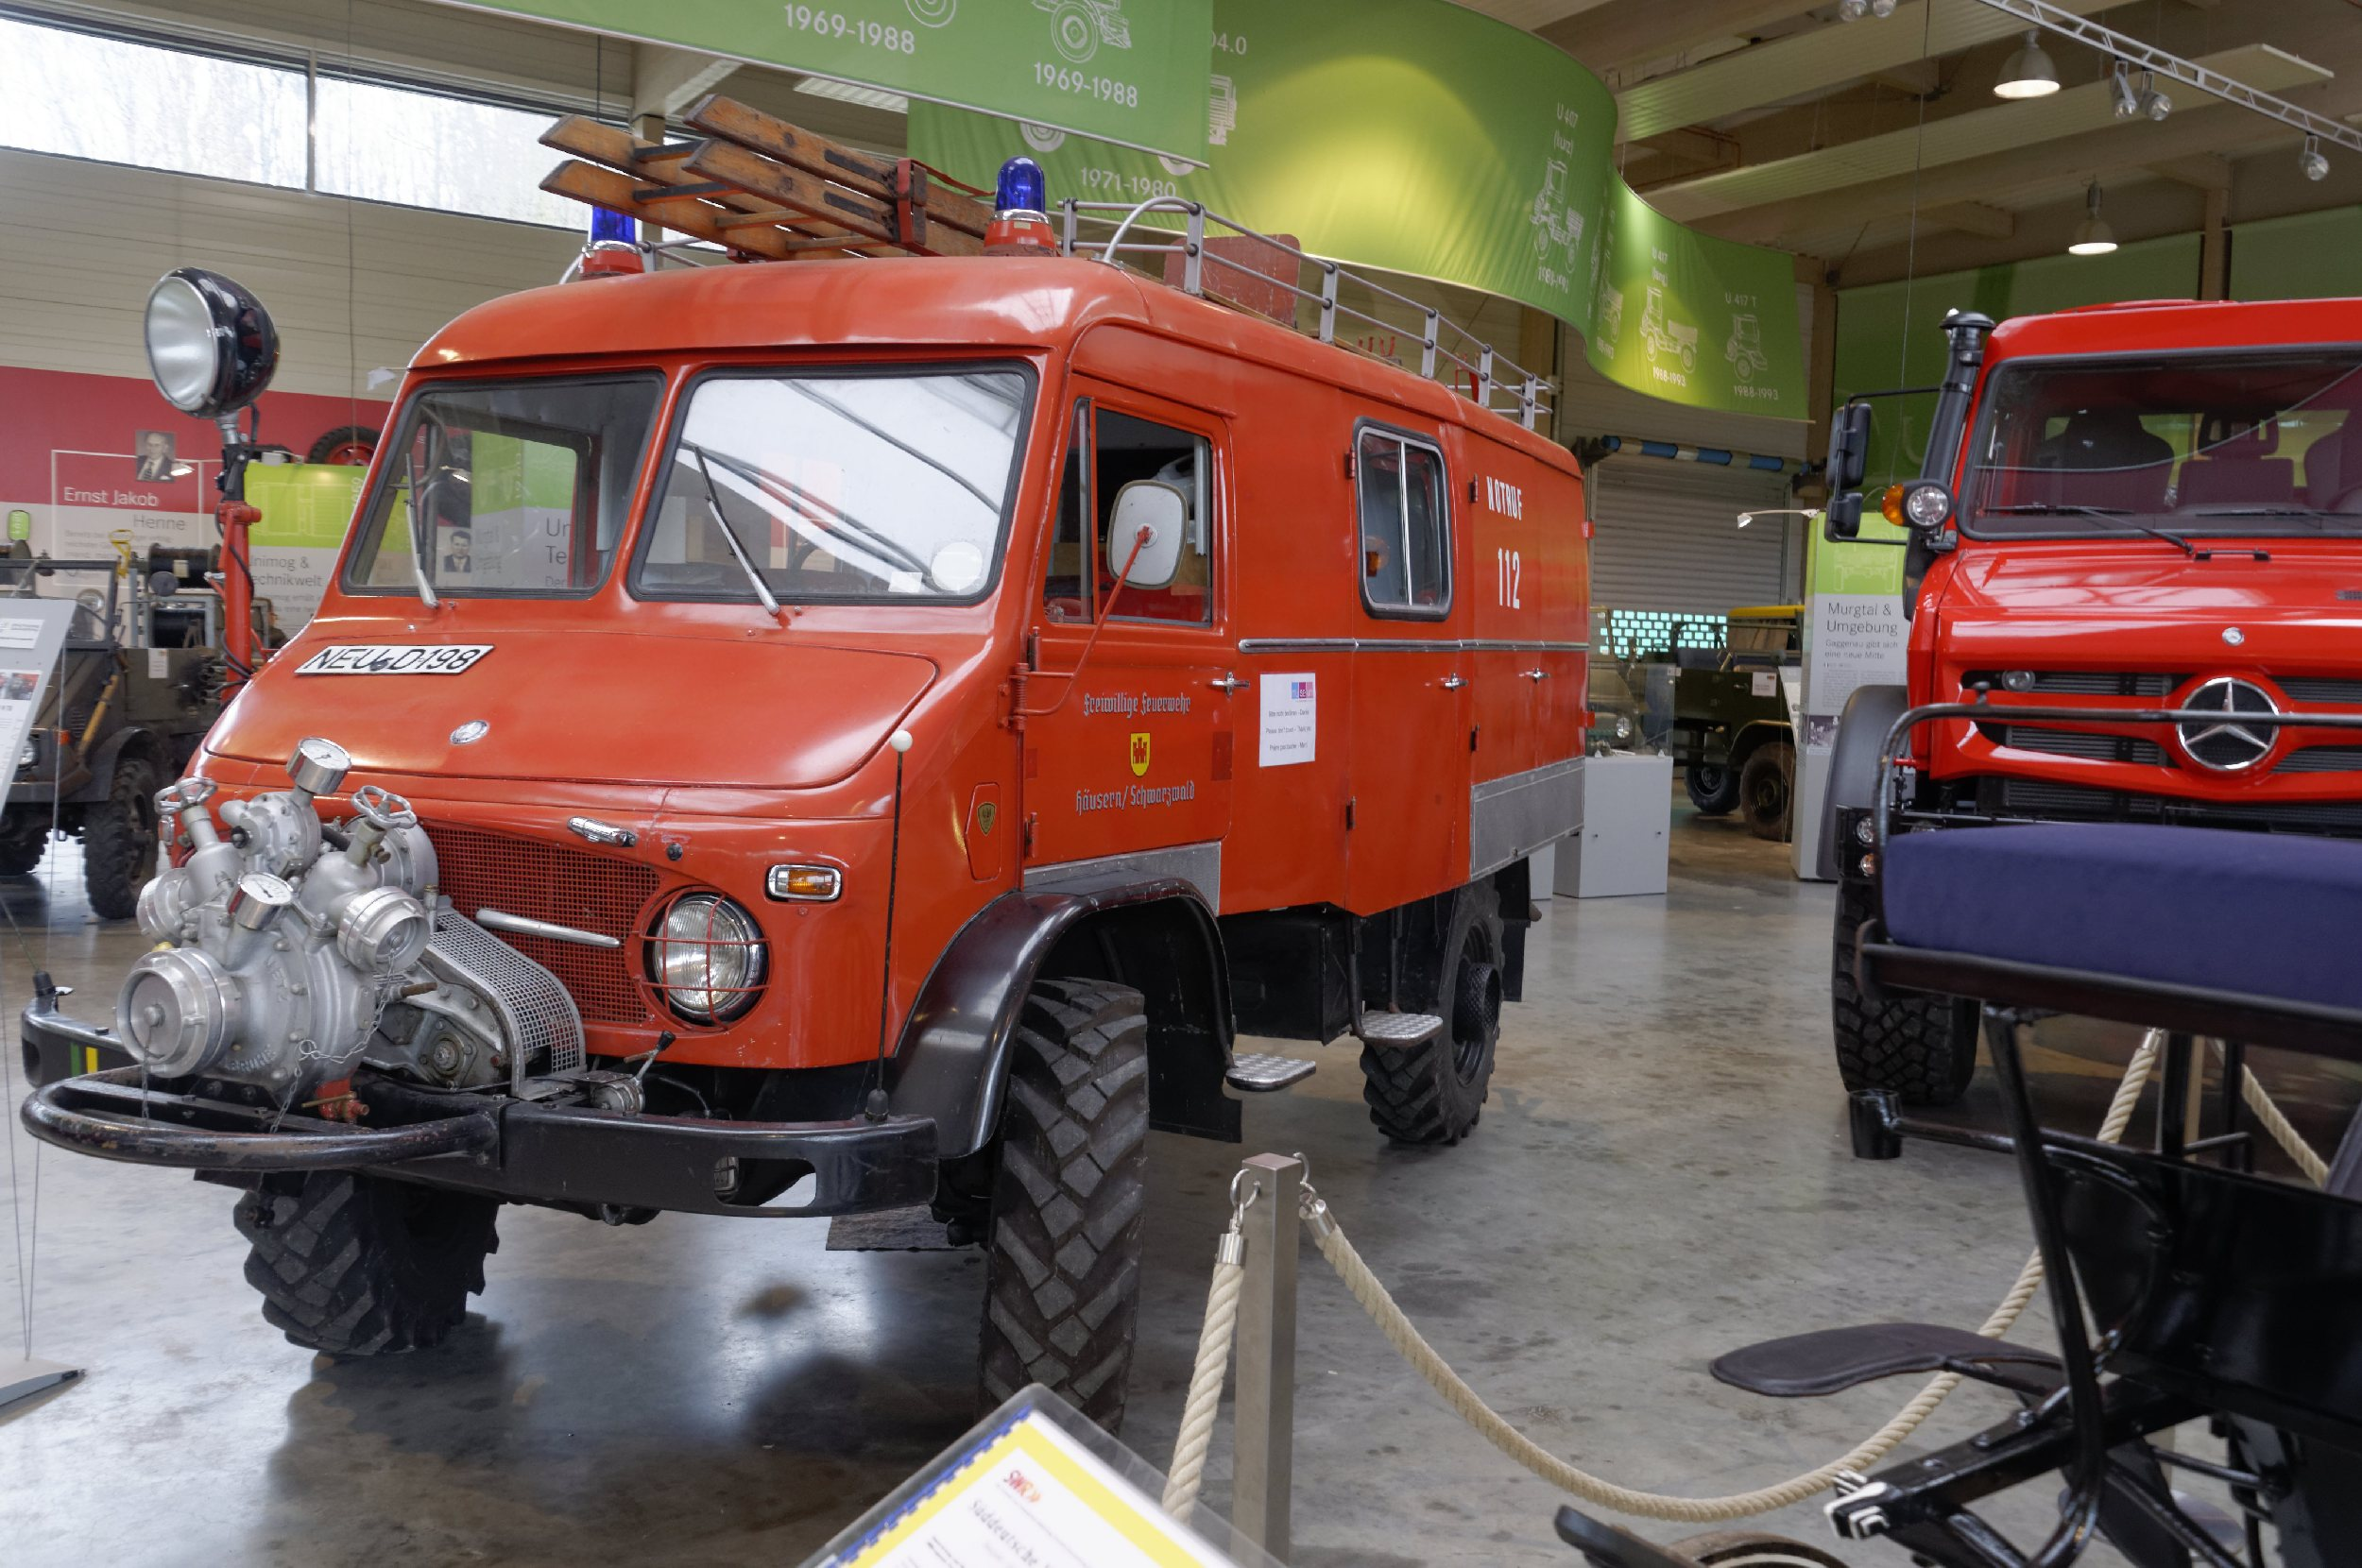 Gaggenau_2016_ Unimog Museum _by RaBoe_099 unimog 404 wikipedia unimog 404 wiring diagram at bakdesigns.co